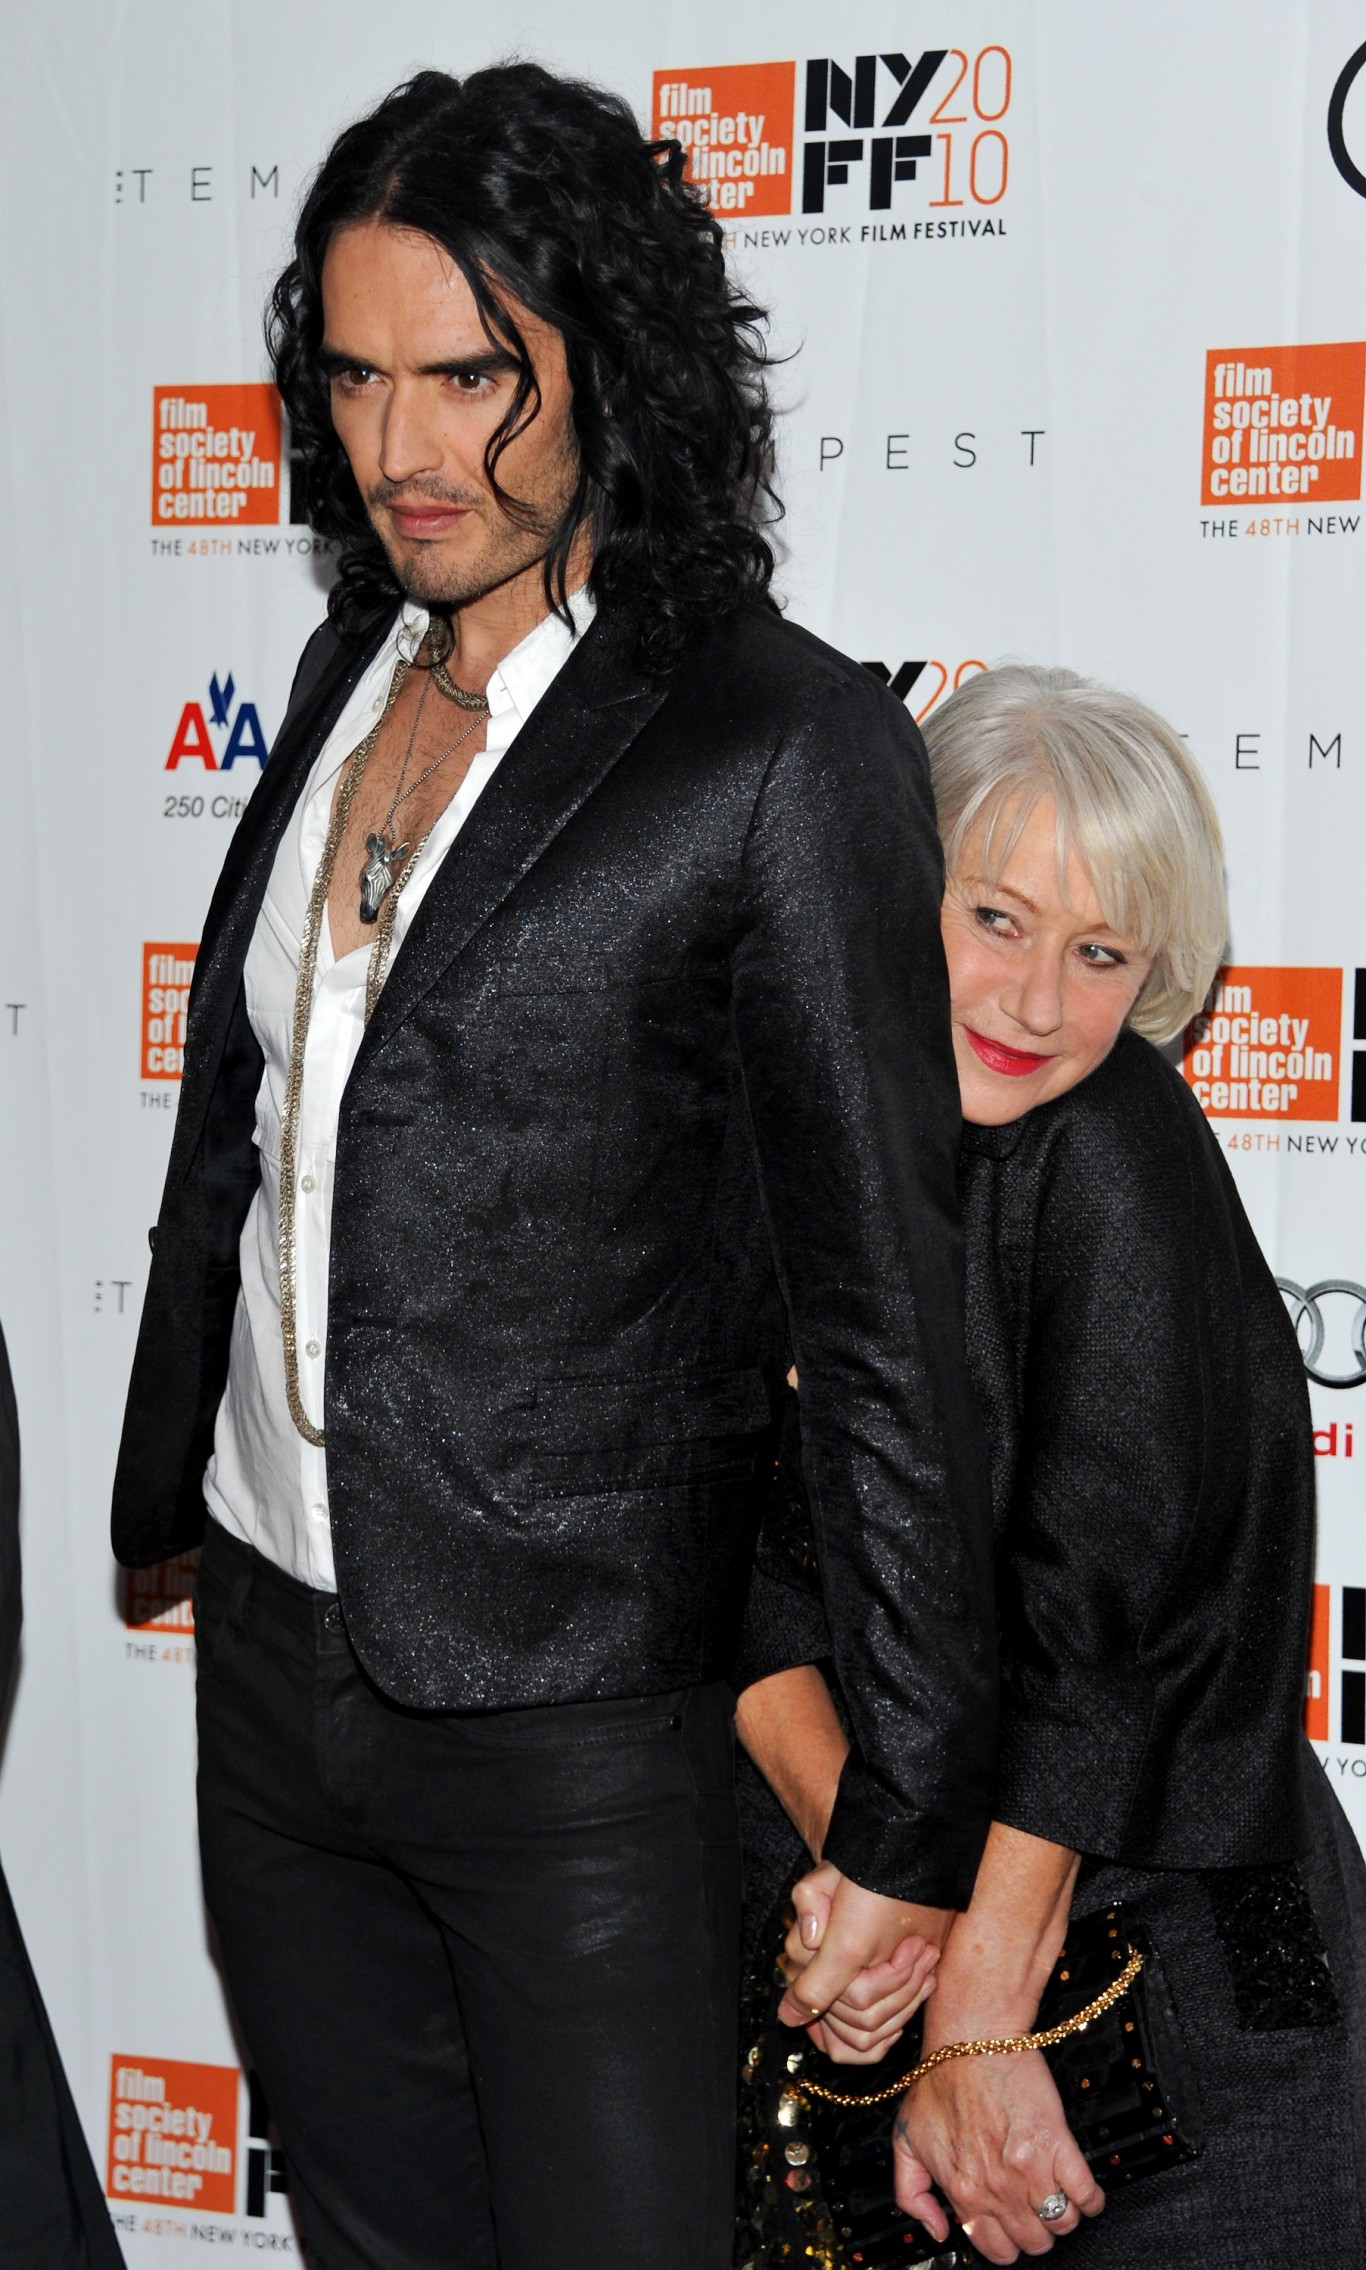 Helen Mirren hites behind her Tempest co-star Russell Brand on the red carpet